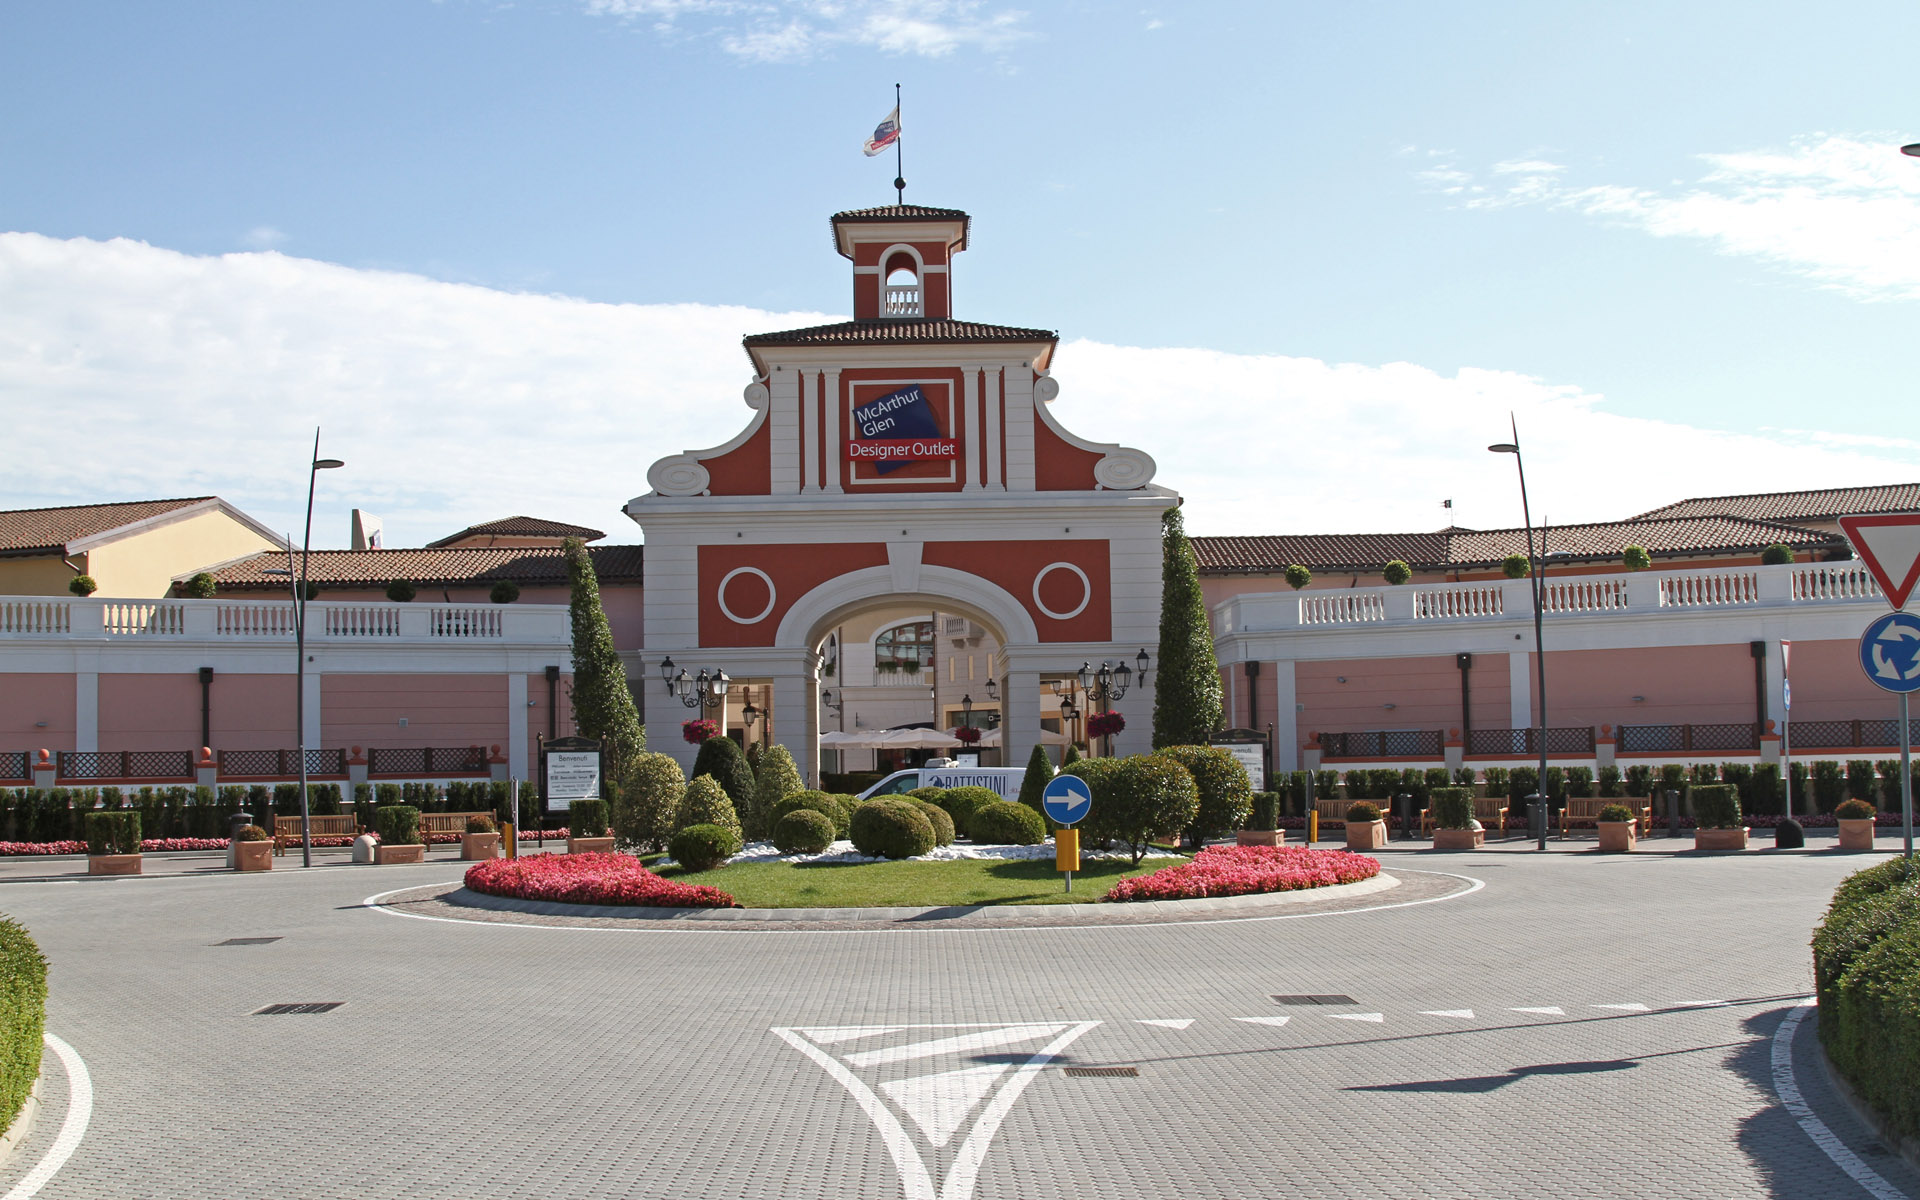 Serravalle designer outlet fase 6 r p engineering for Serravalle designer outlet